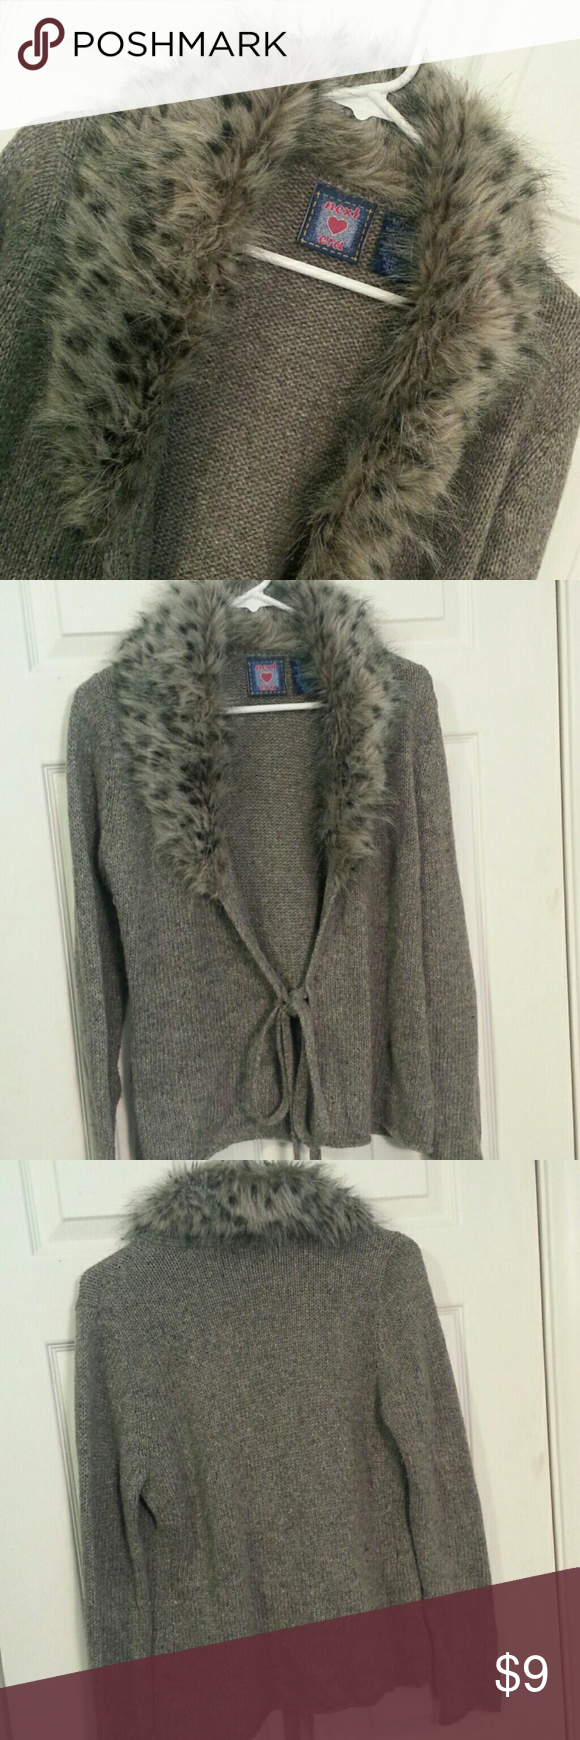 Wrap sweater with fur like collar | D, Grey and Sweater cardigan